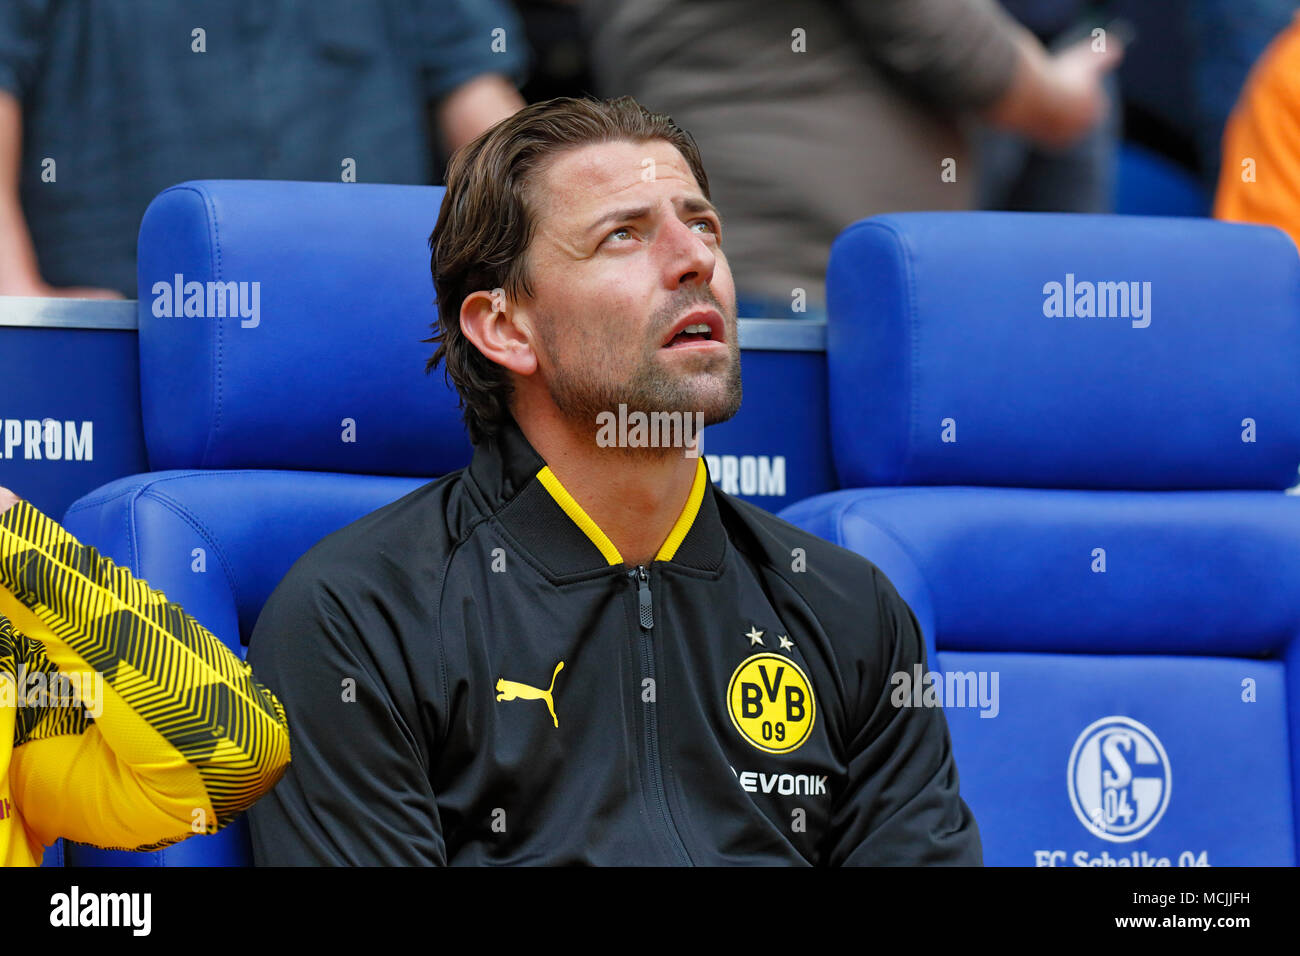 sports, football, Bundesliga, 2017/2018, FC Schalke 04 vs BVB Borussia Dortmund 2:0, Veltins Arena Gelsenkirchen, substitutes bench Dortmund, keeper Roman Weidenfeller (BVB) Stock Photo